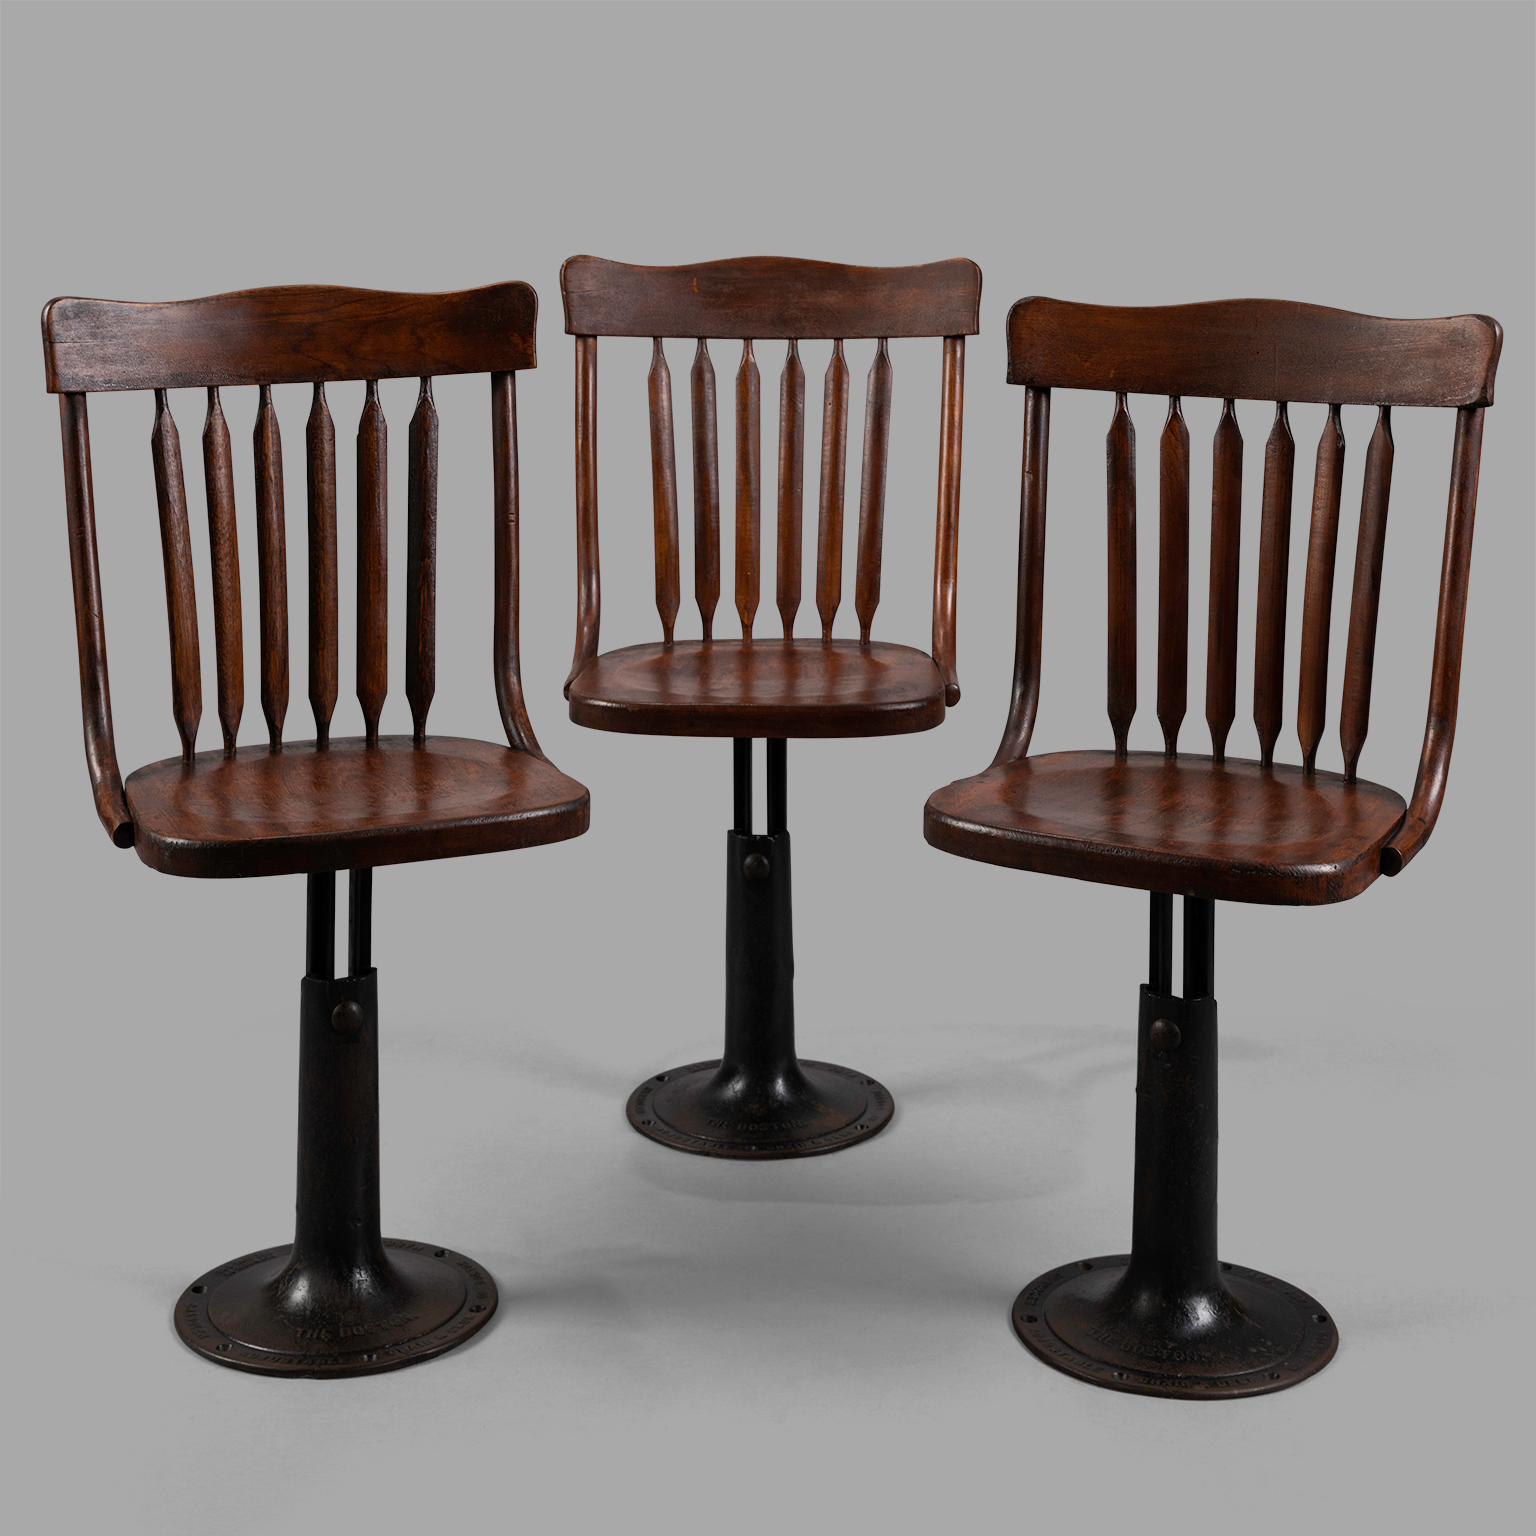 Tremendous Three Cast Iron And Wood Ajustable Height Chairs Circa 1895 Cjindustries Chair Design For Home Cjindustriesco